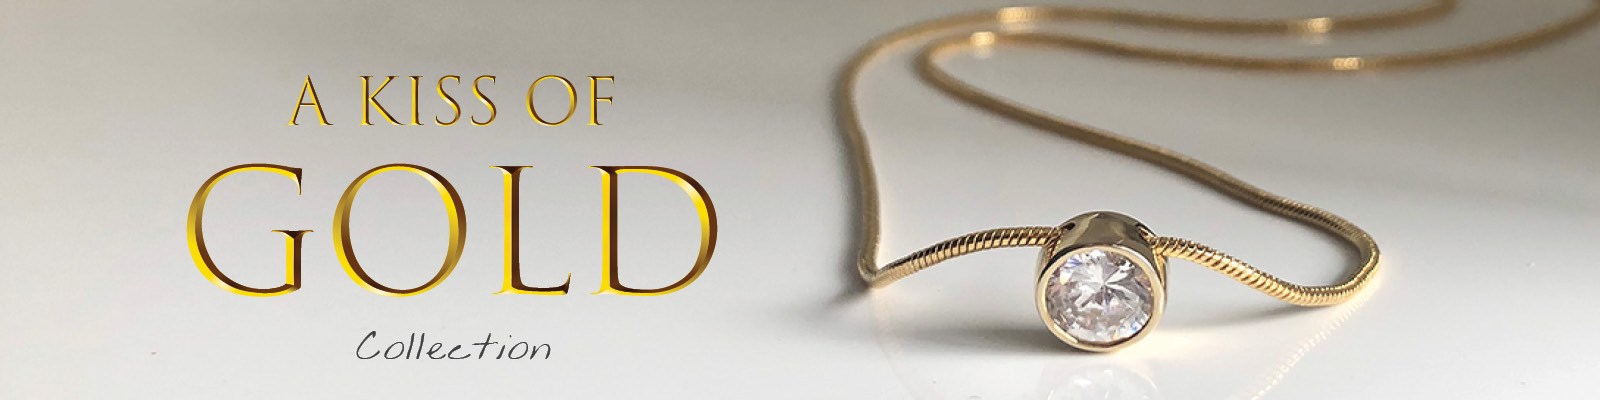 new-webshop-pc-banner-size-kiss-of-gold.png